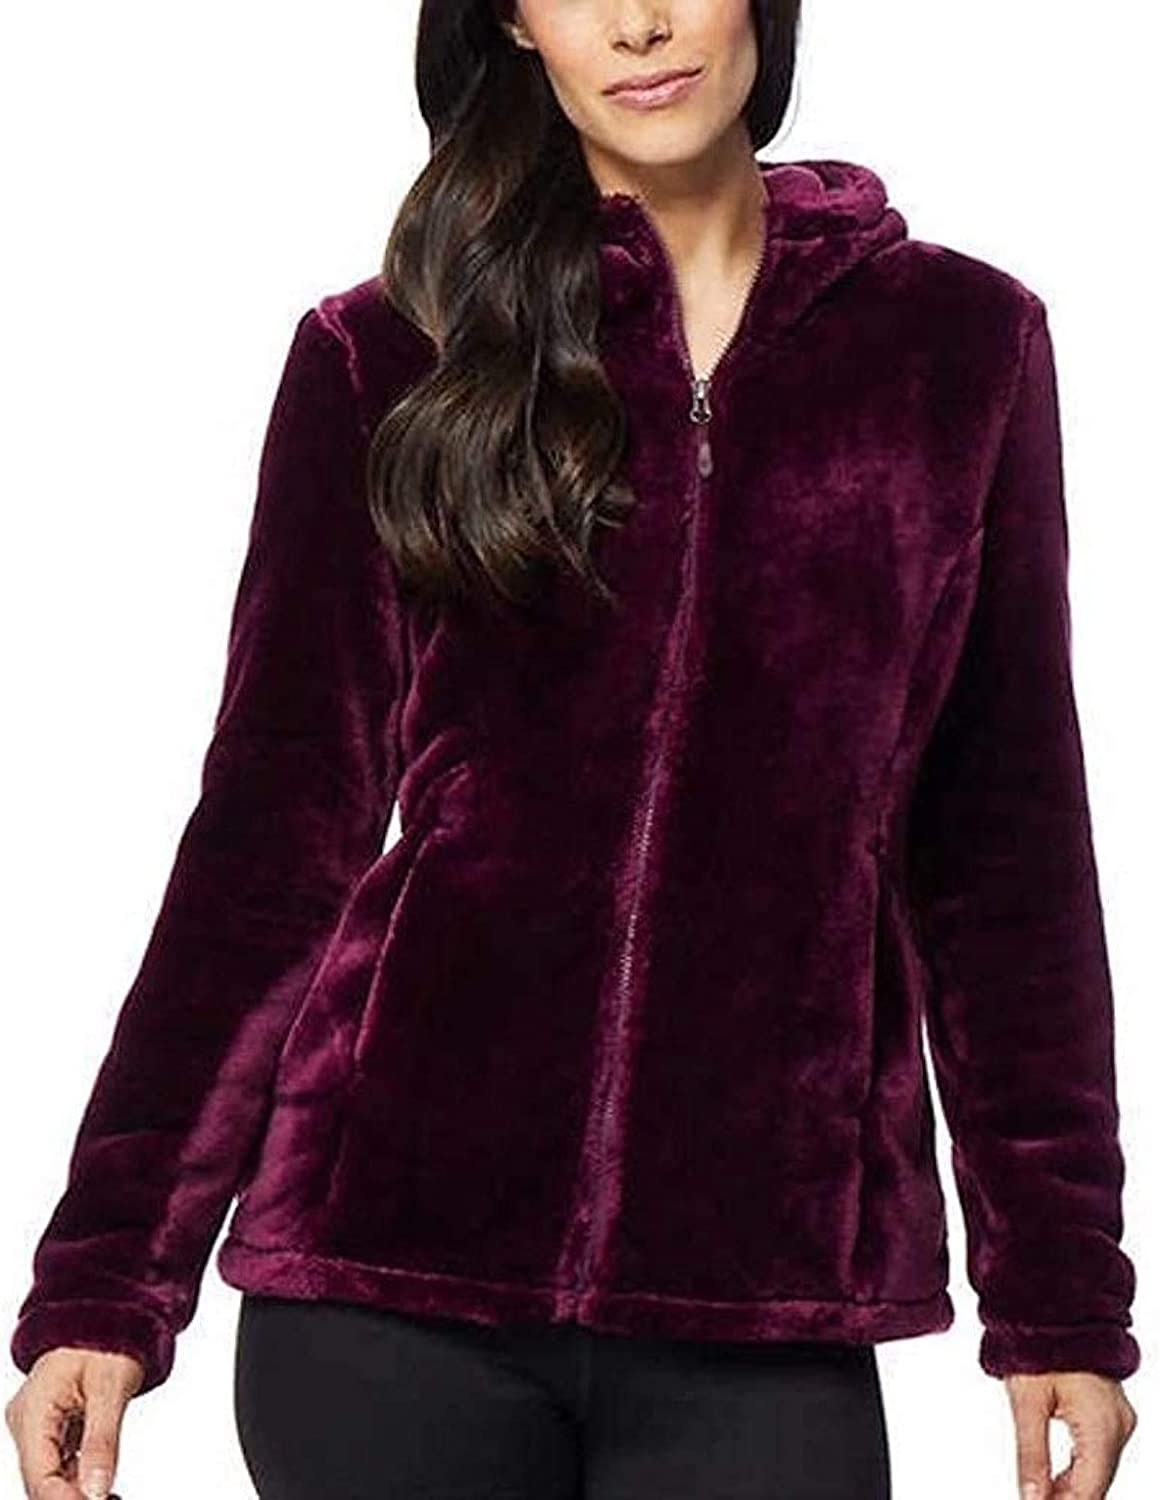 32 Degrees Fleece Quilted Funnel-Neck Top S $46